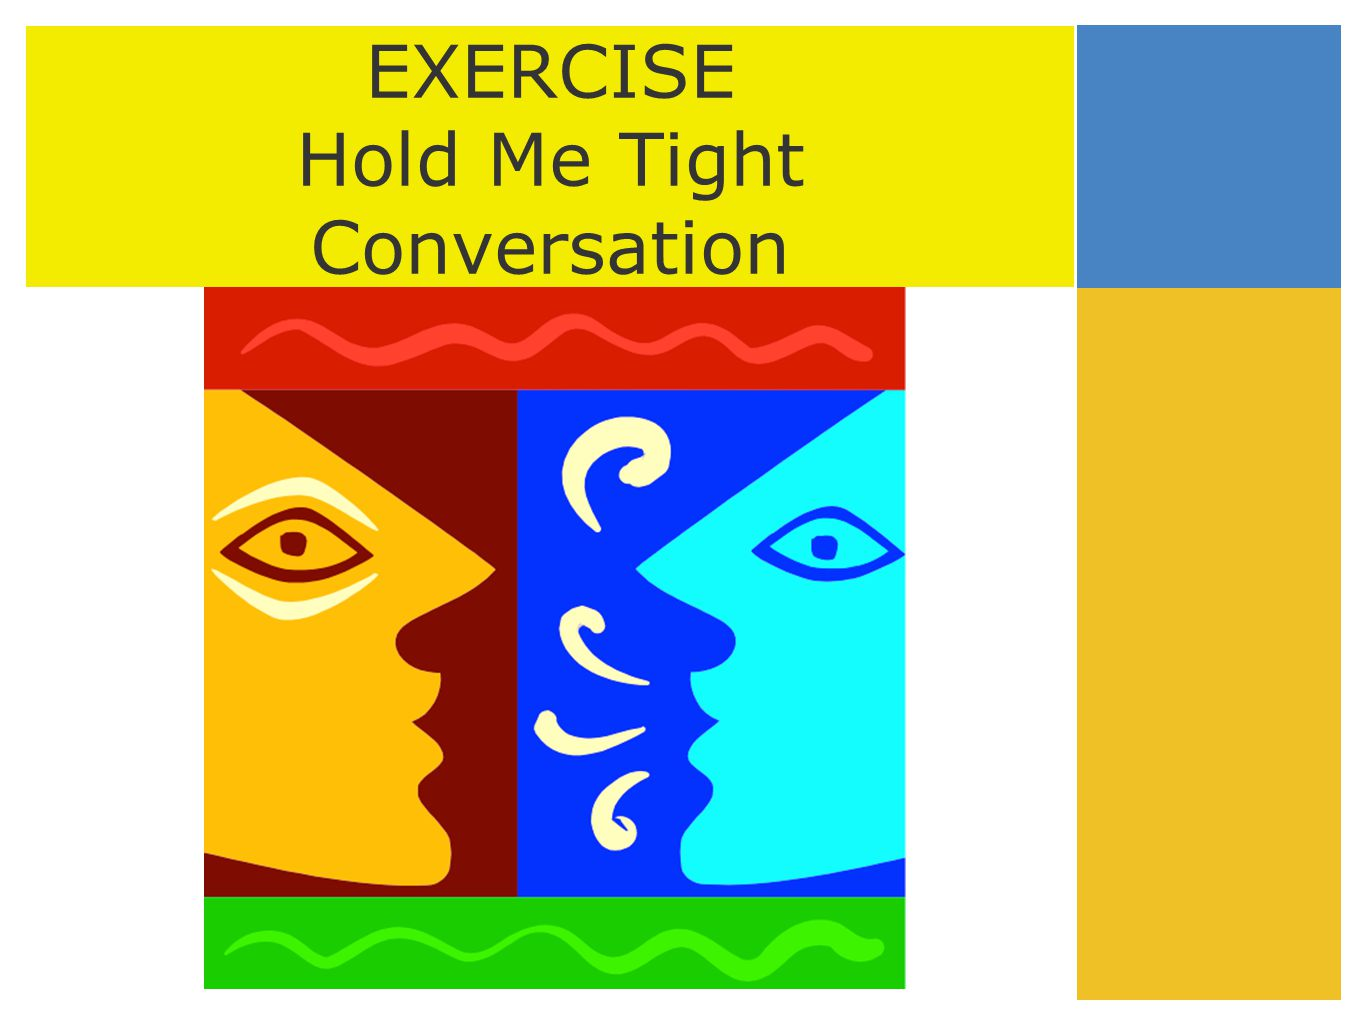 EXERCISE Hold Me Tight Conversation